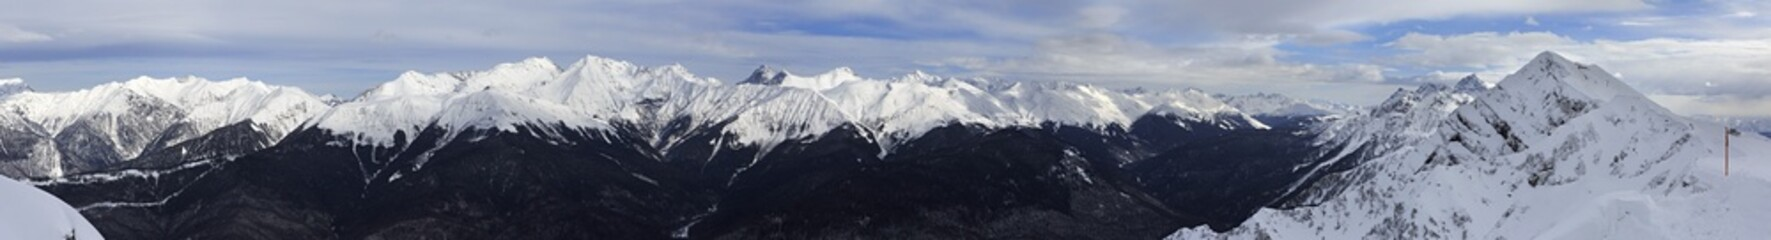 Panorama of Caucasus Mountains in Rosa Khutor Alpine Resort